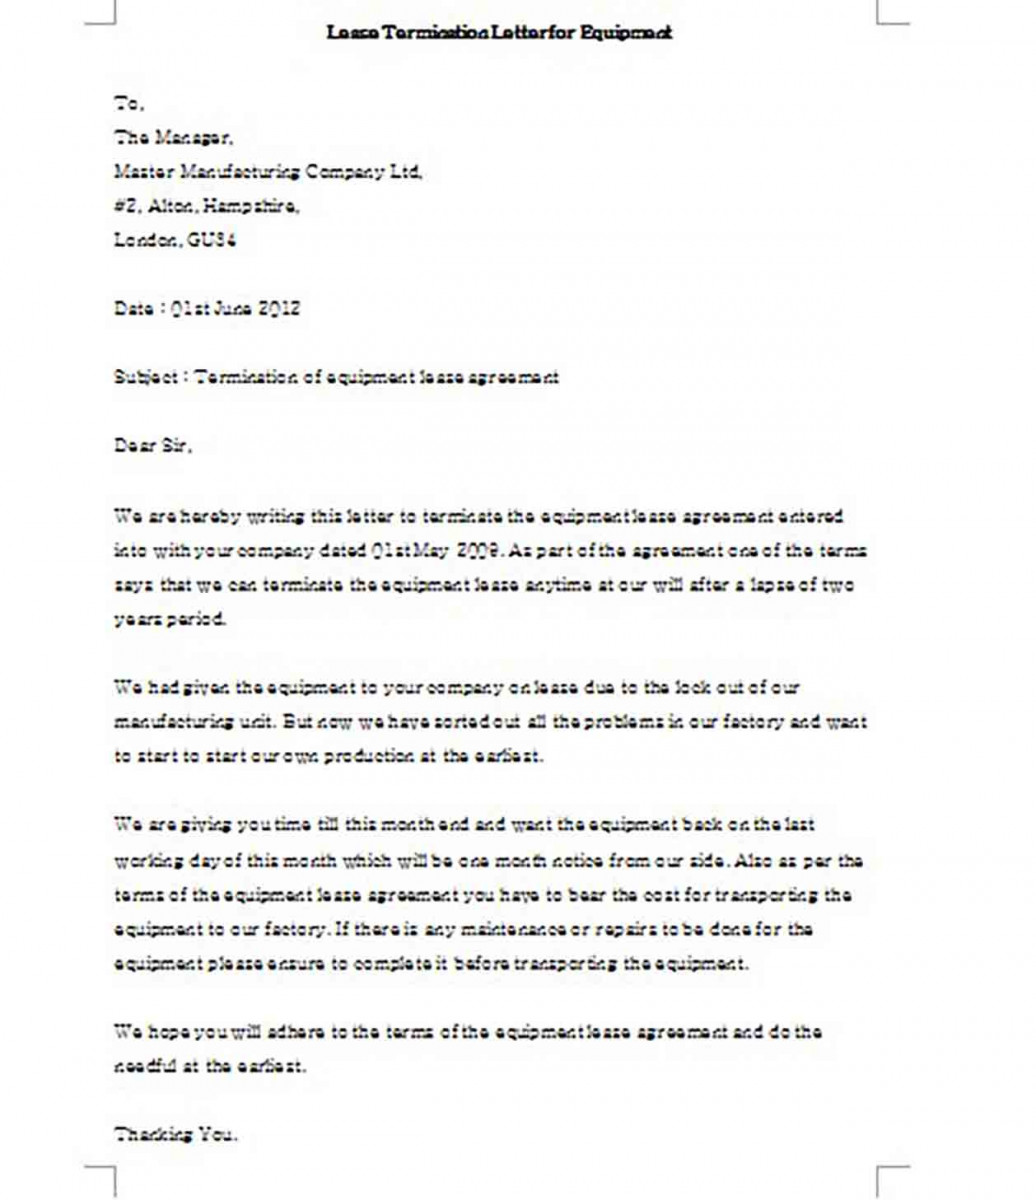 Lease Termination Letter for Equipment templates Example